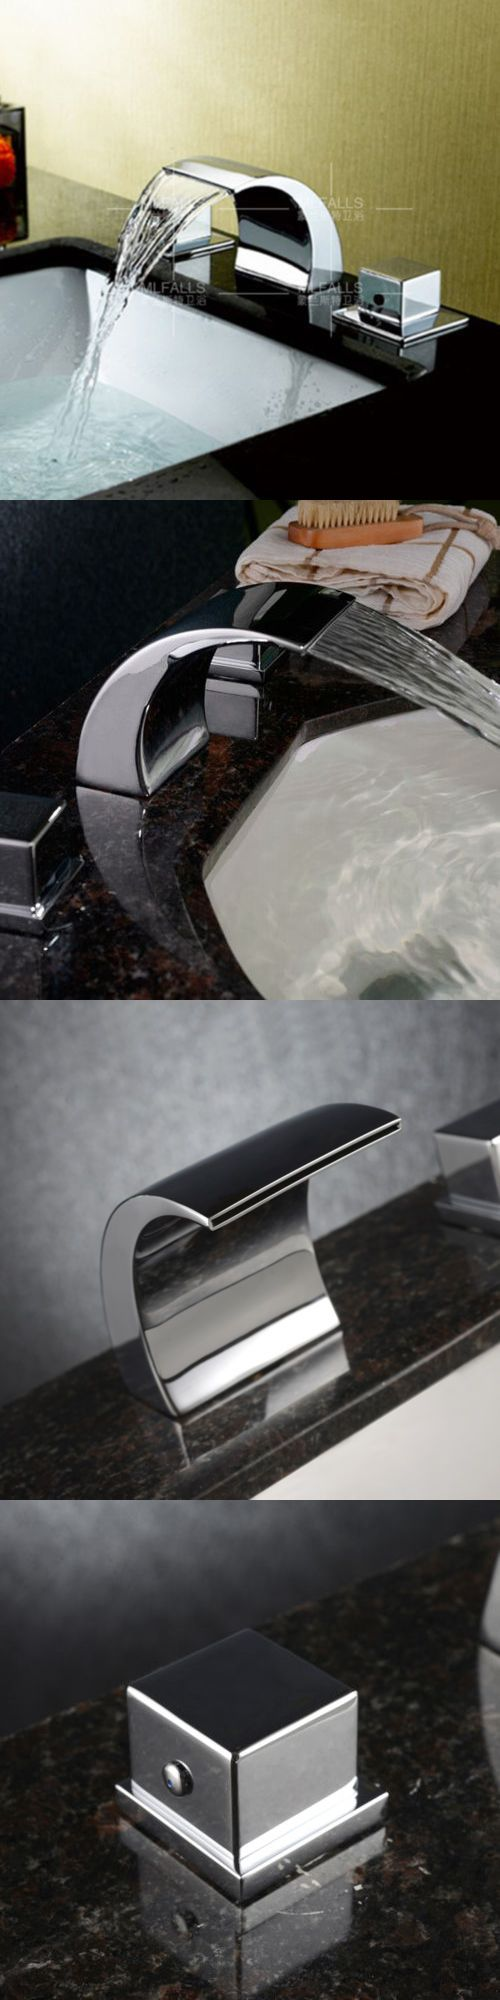 Bathroom sink faucet one hole double handle basin mixer tap ebay - Faucets 42024 Bathroom Waterfall Basin Sink Faucet Mixer Tap Chrome Double Handles Widespread